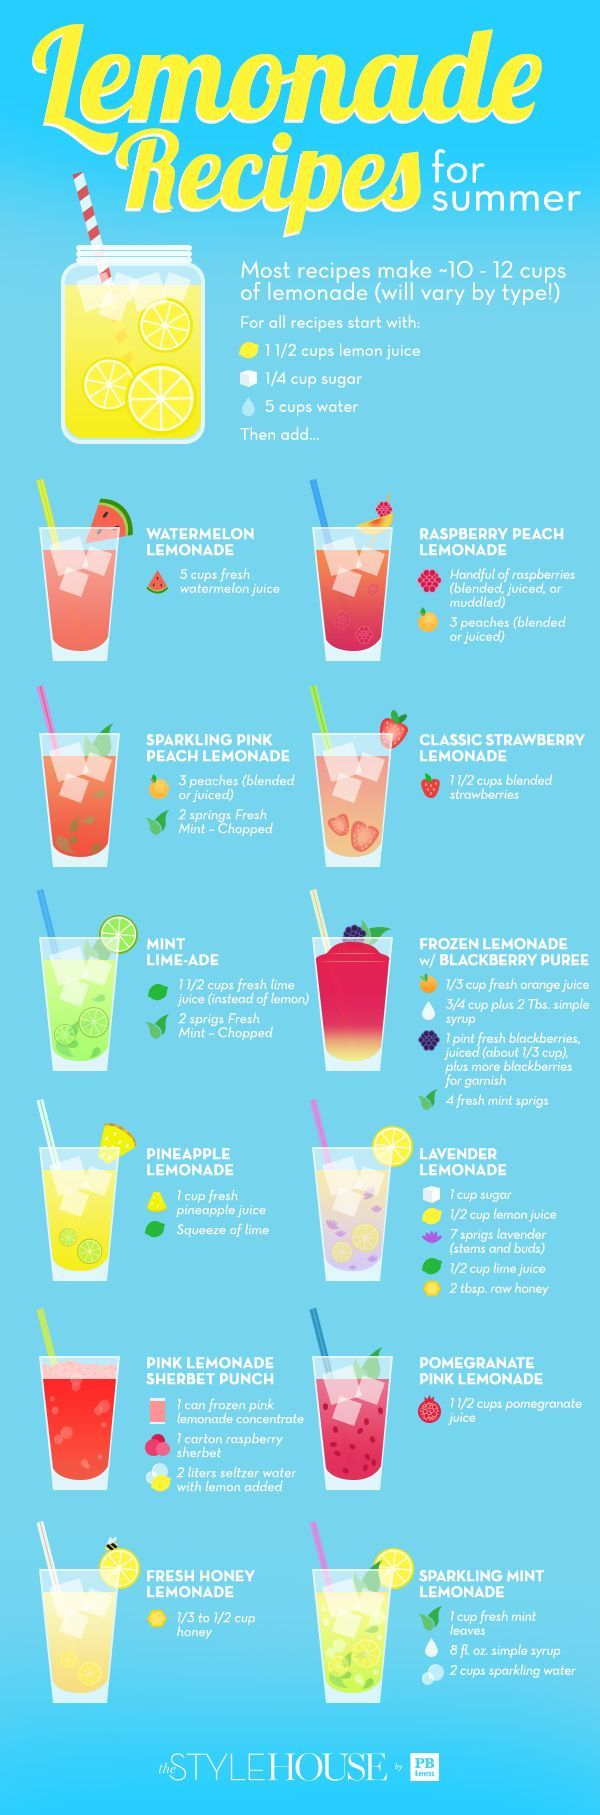 12 Lemonade Recipes You Have to Try This Summer